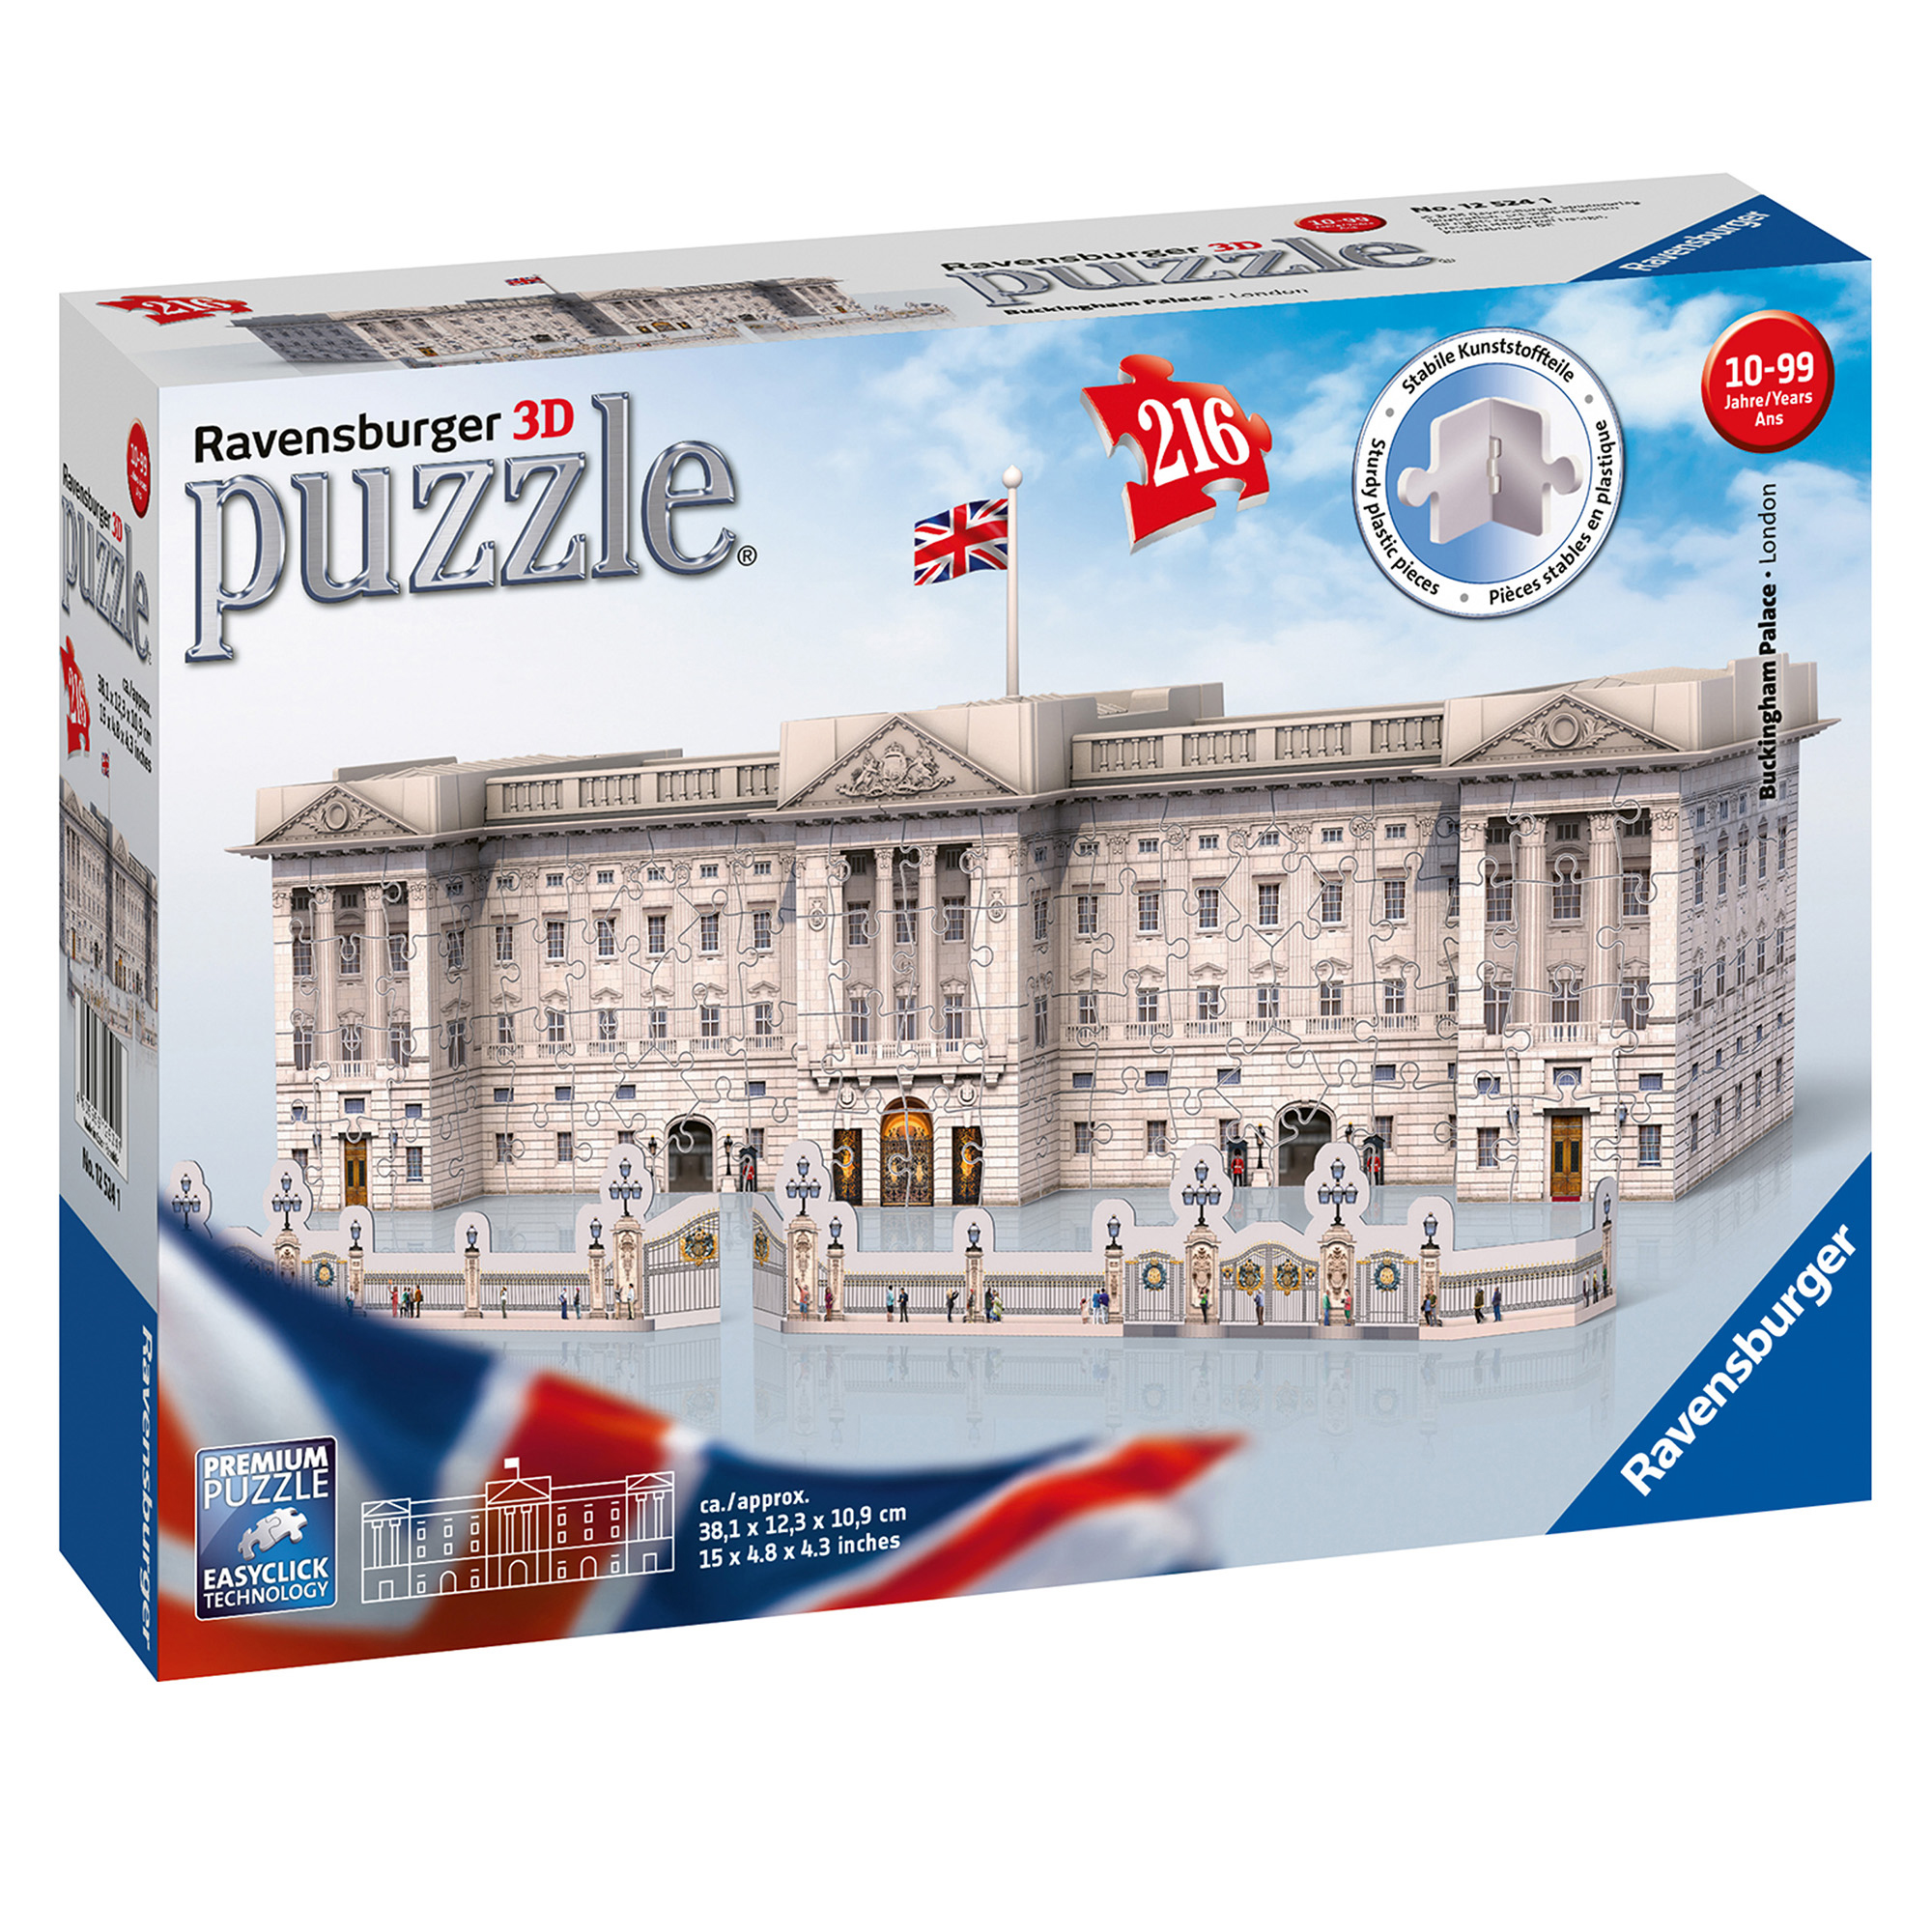 Ravensburger Buckingham Palace 216 Piece 3D Puzzle